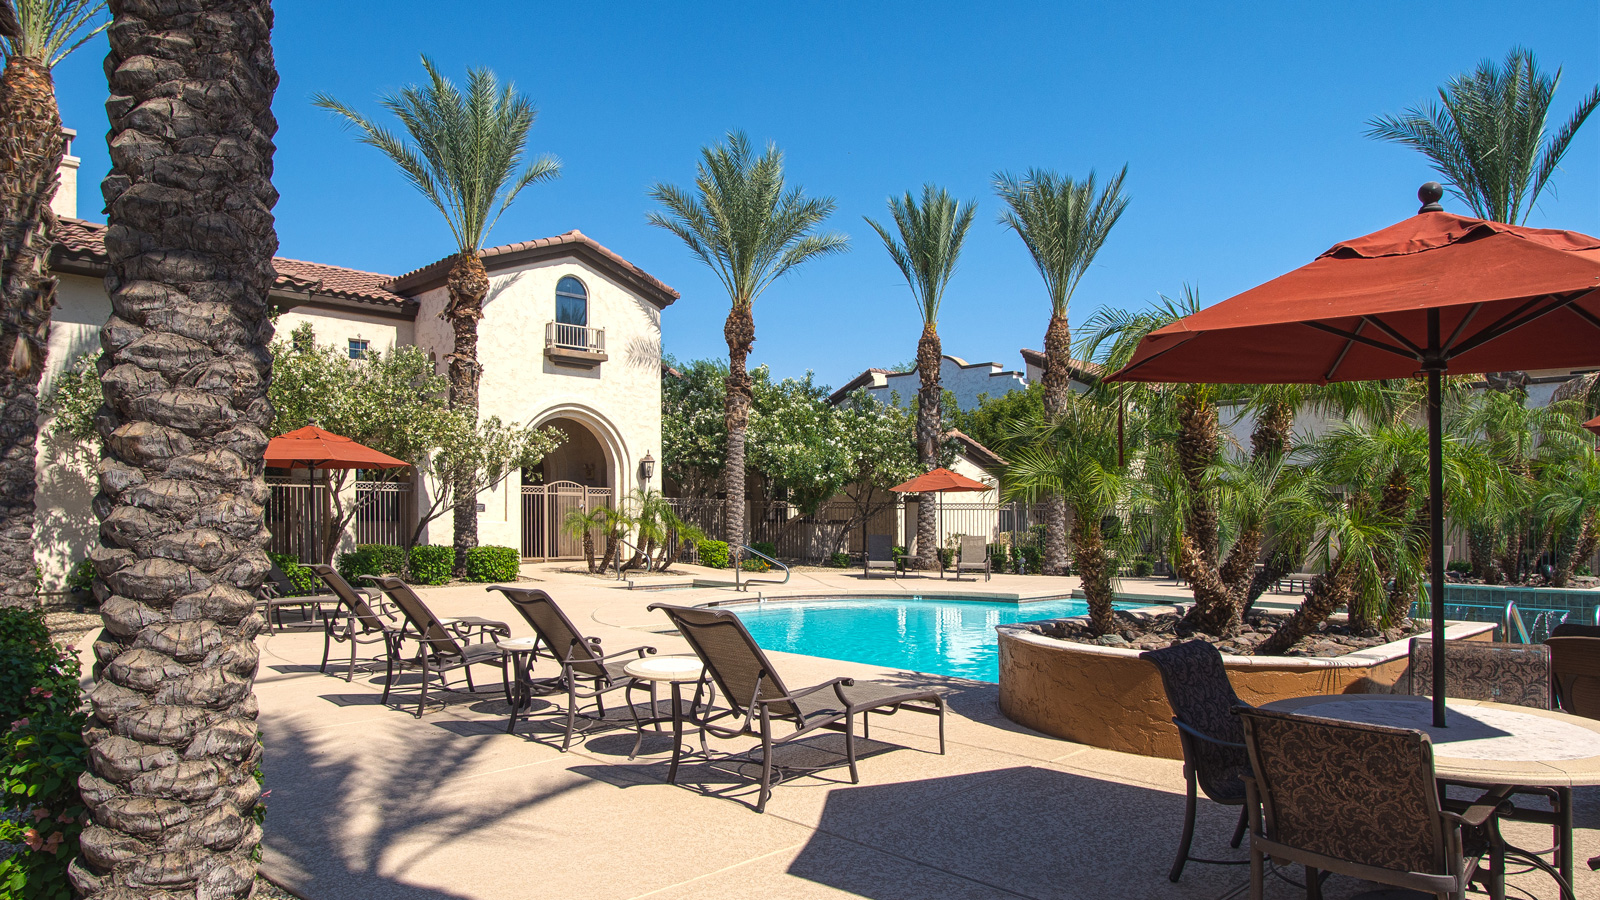 Chuparosas Apartments | 2222 South Dobson Road, Chandler, AZ 85224 | 258 Units | Built in 2007 | $43,500,000 | $168,605 Per Unit | $169.25 Per SF